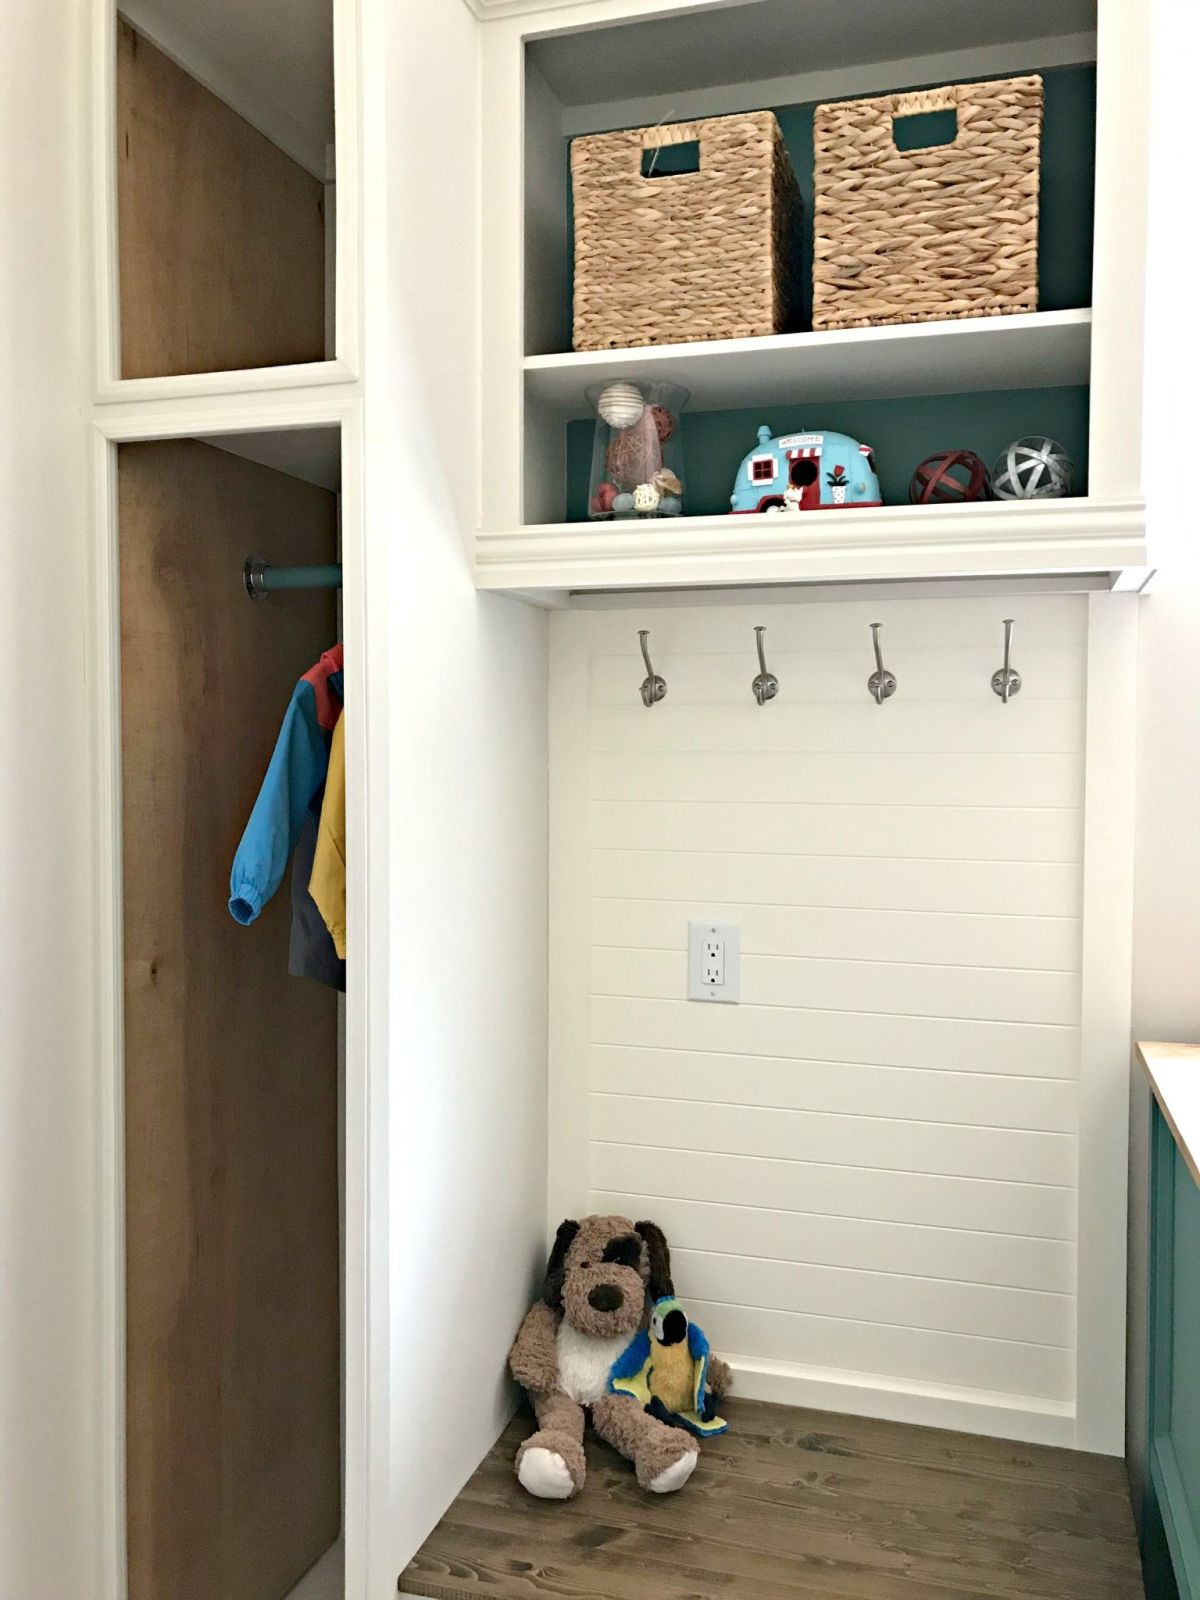 Easy DIY Open Cabinet Makeover with Plywood Panels